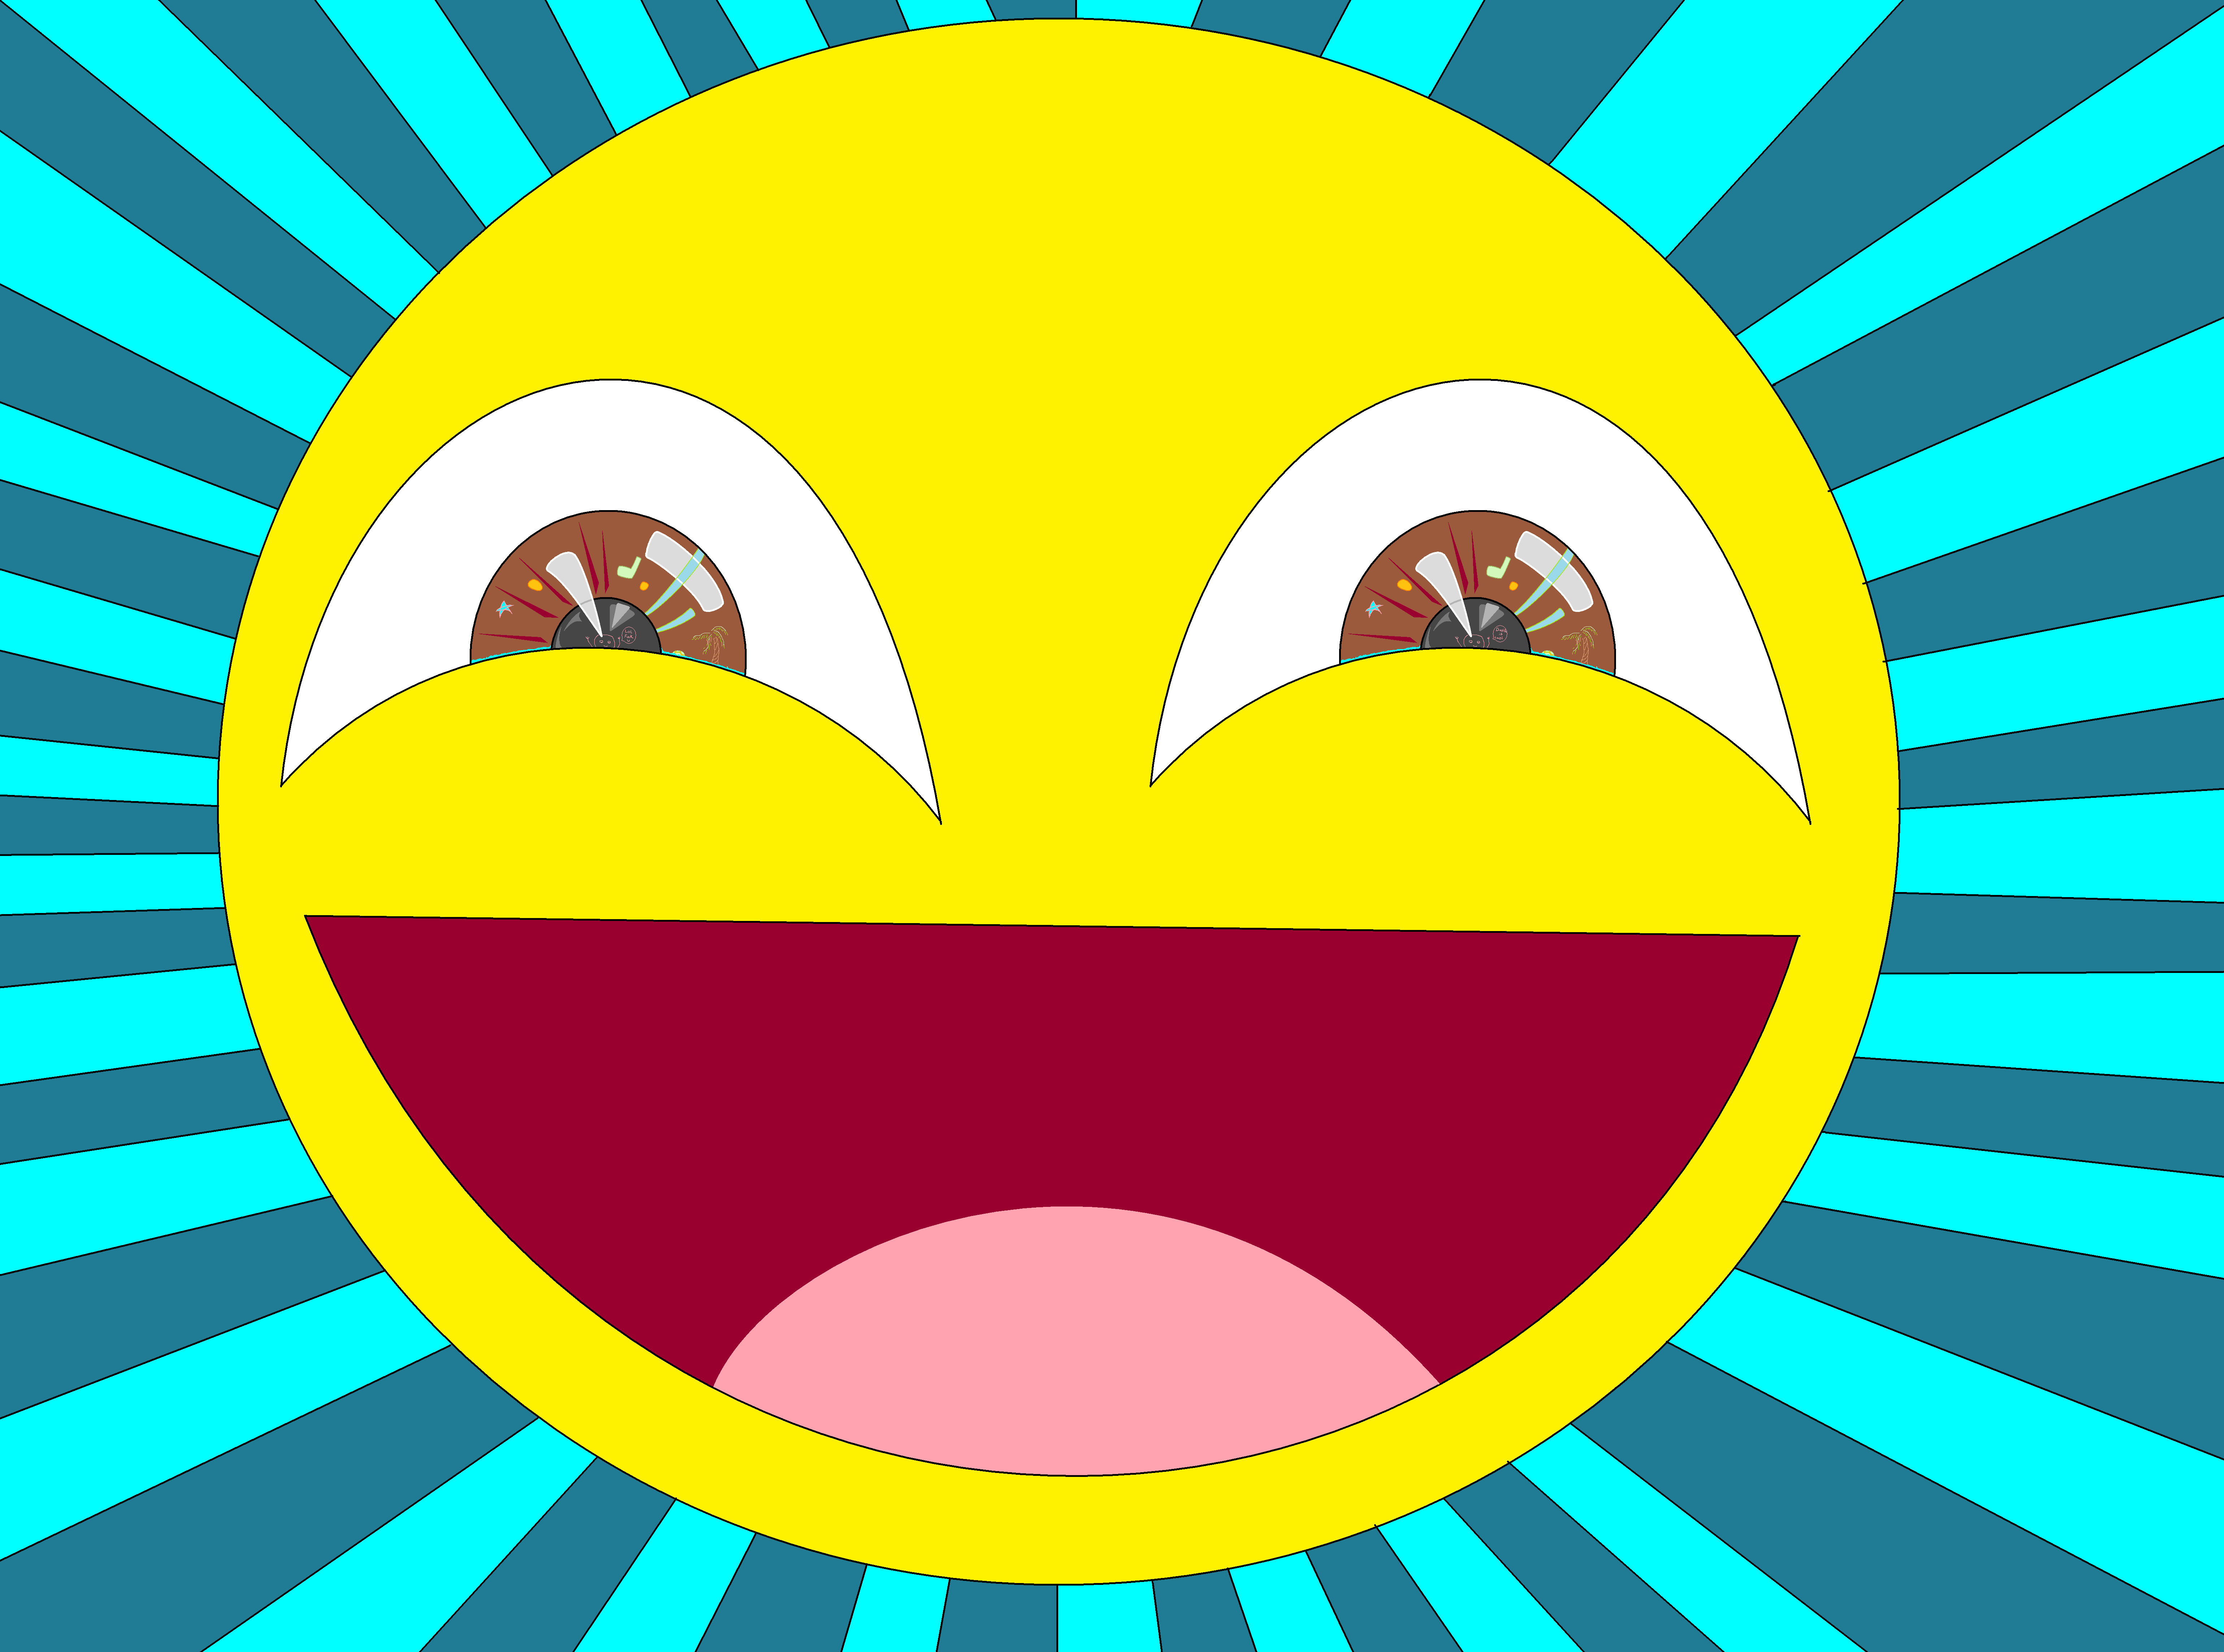 smiley face HD Wallpaper